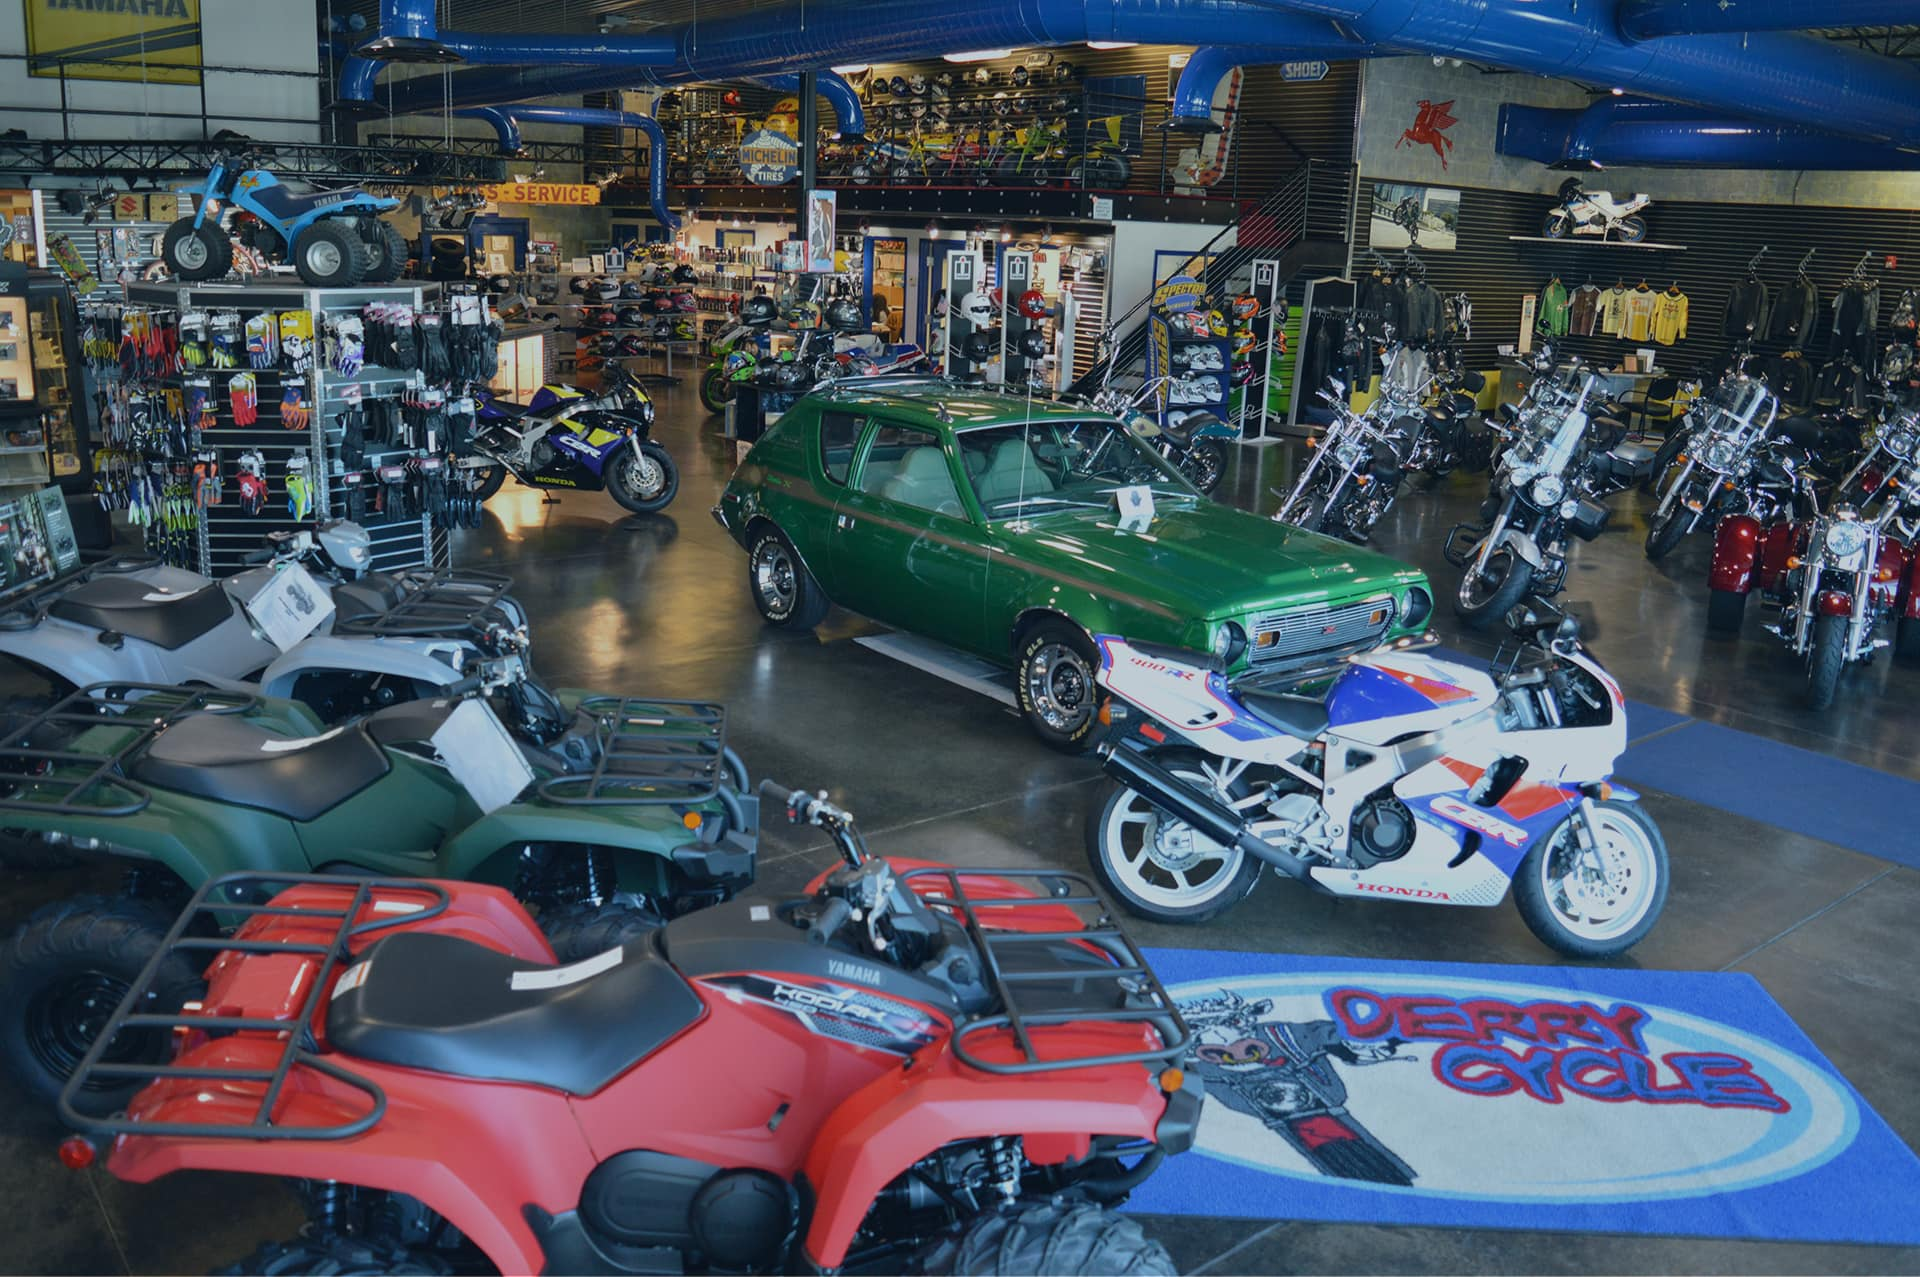 Explore New and Used Motorsports at Derry Cycle